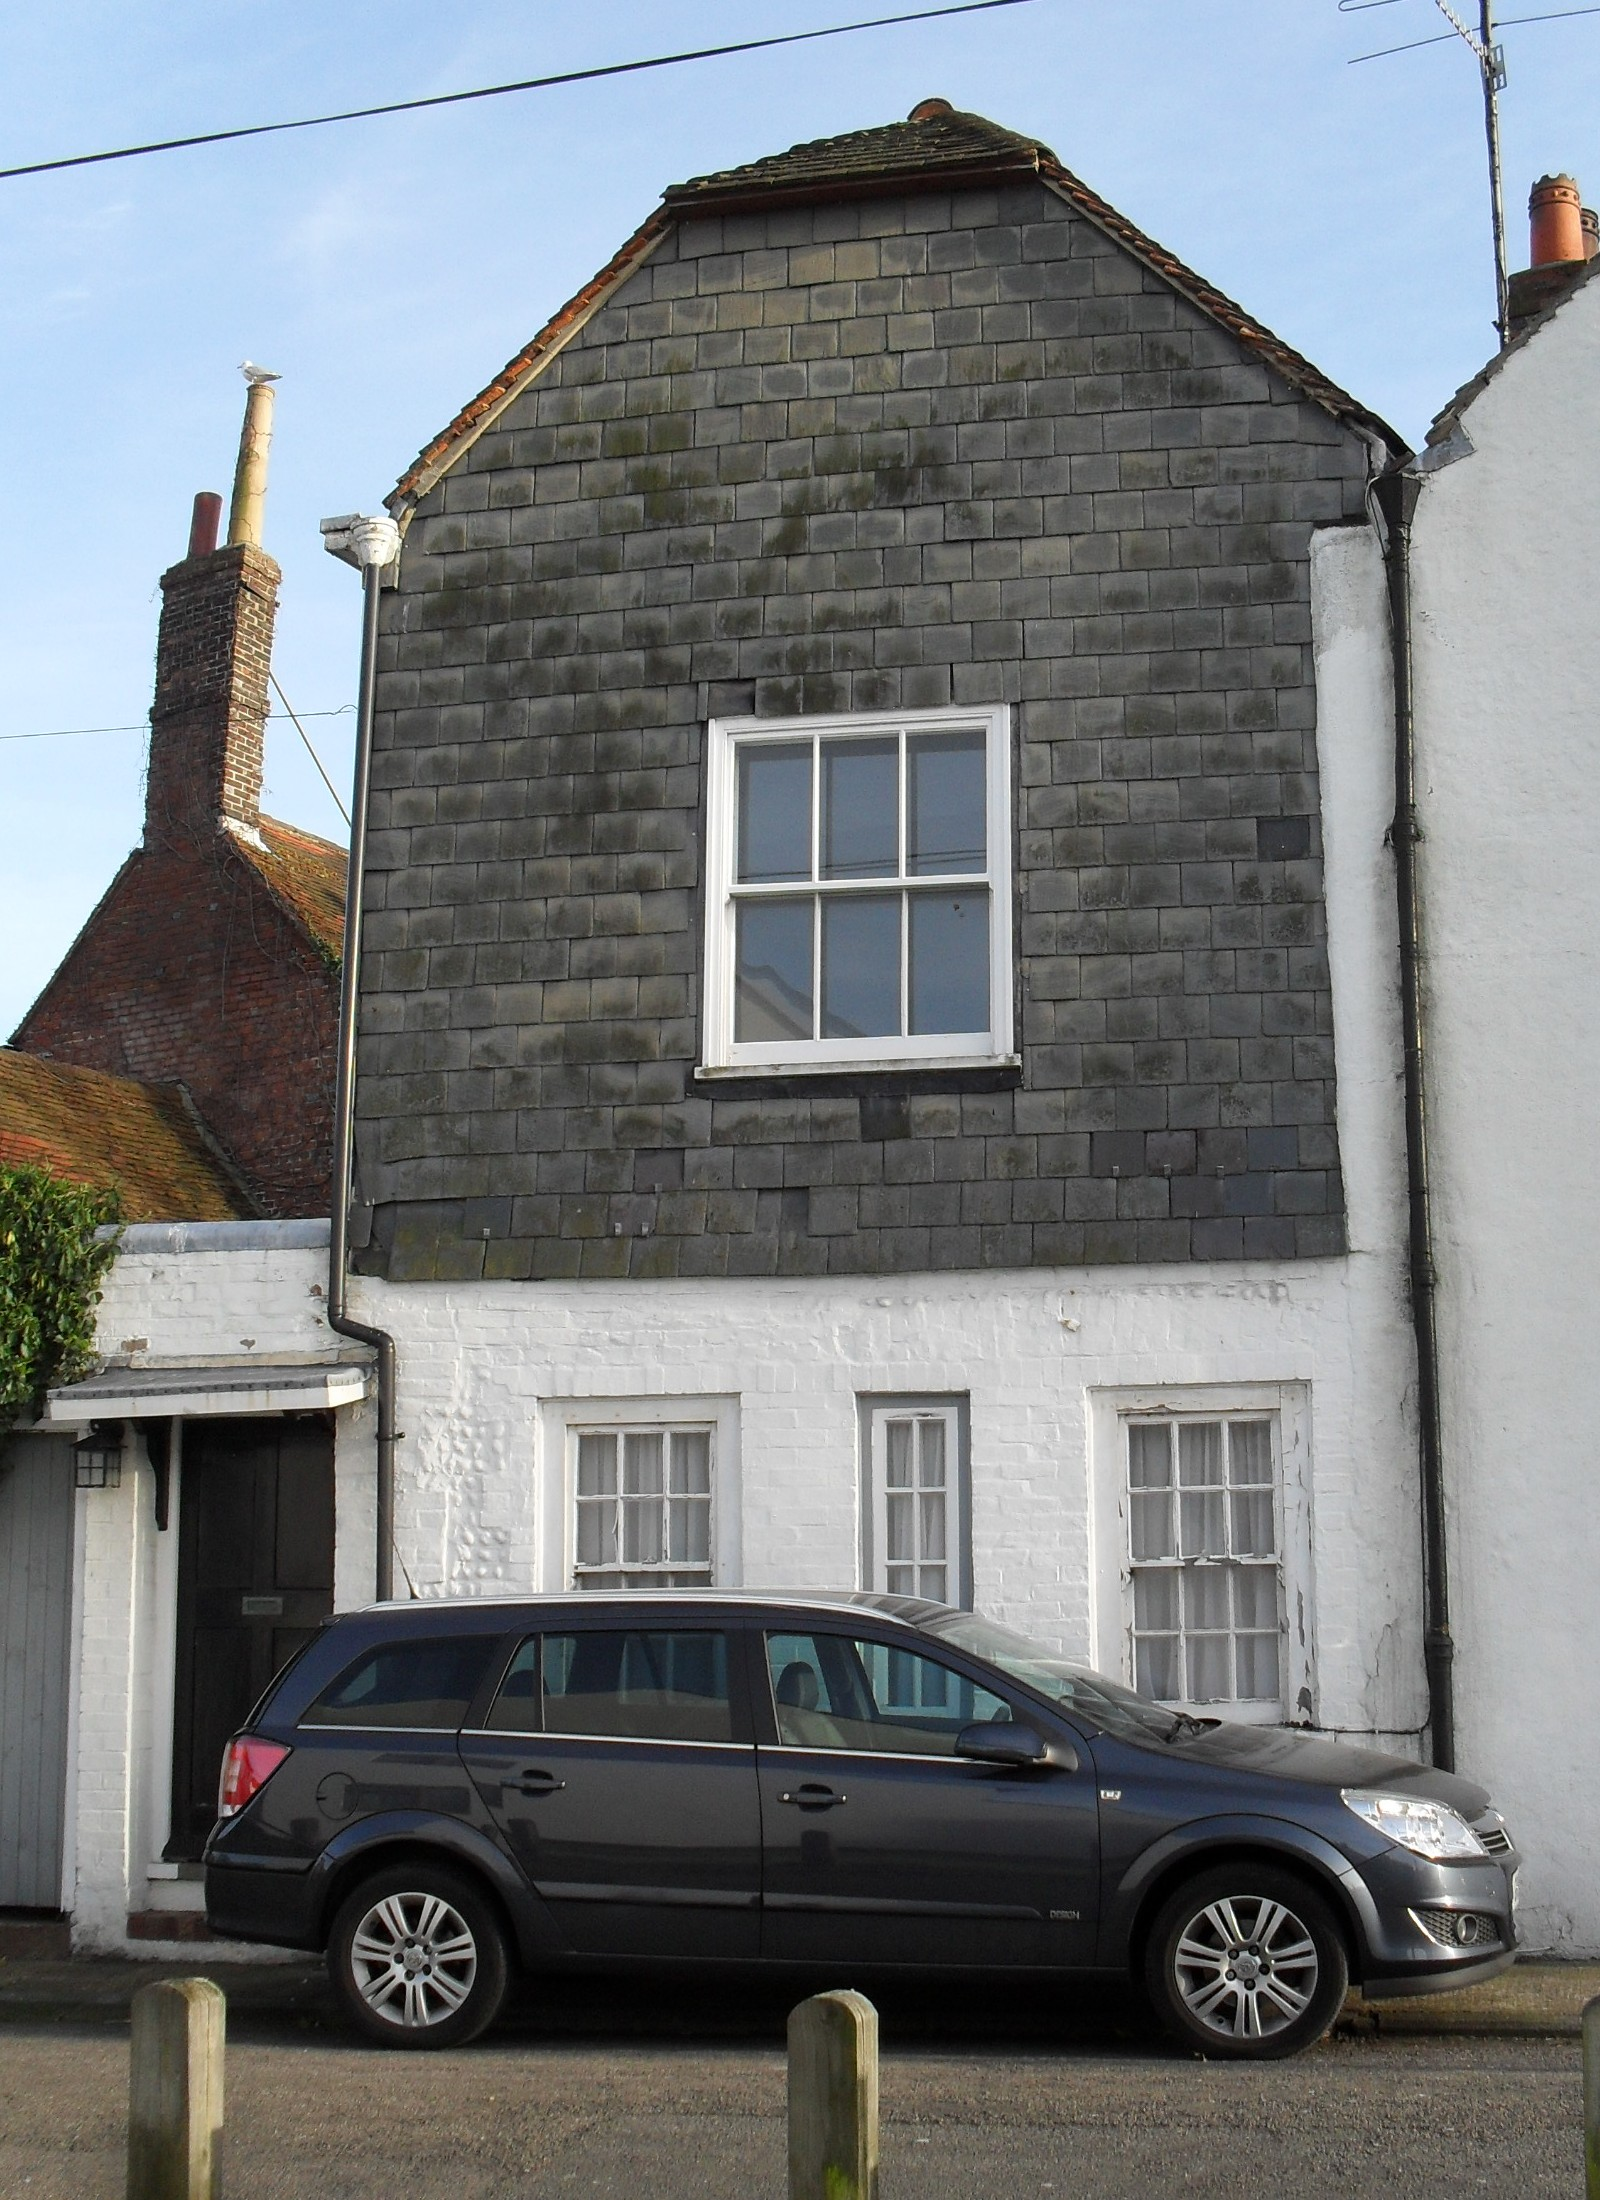 File:15 Bakers Road, Old Town, Eastbourne (NHLE Code